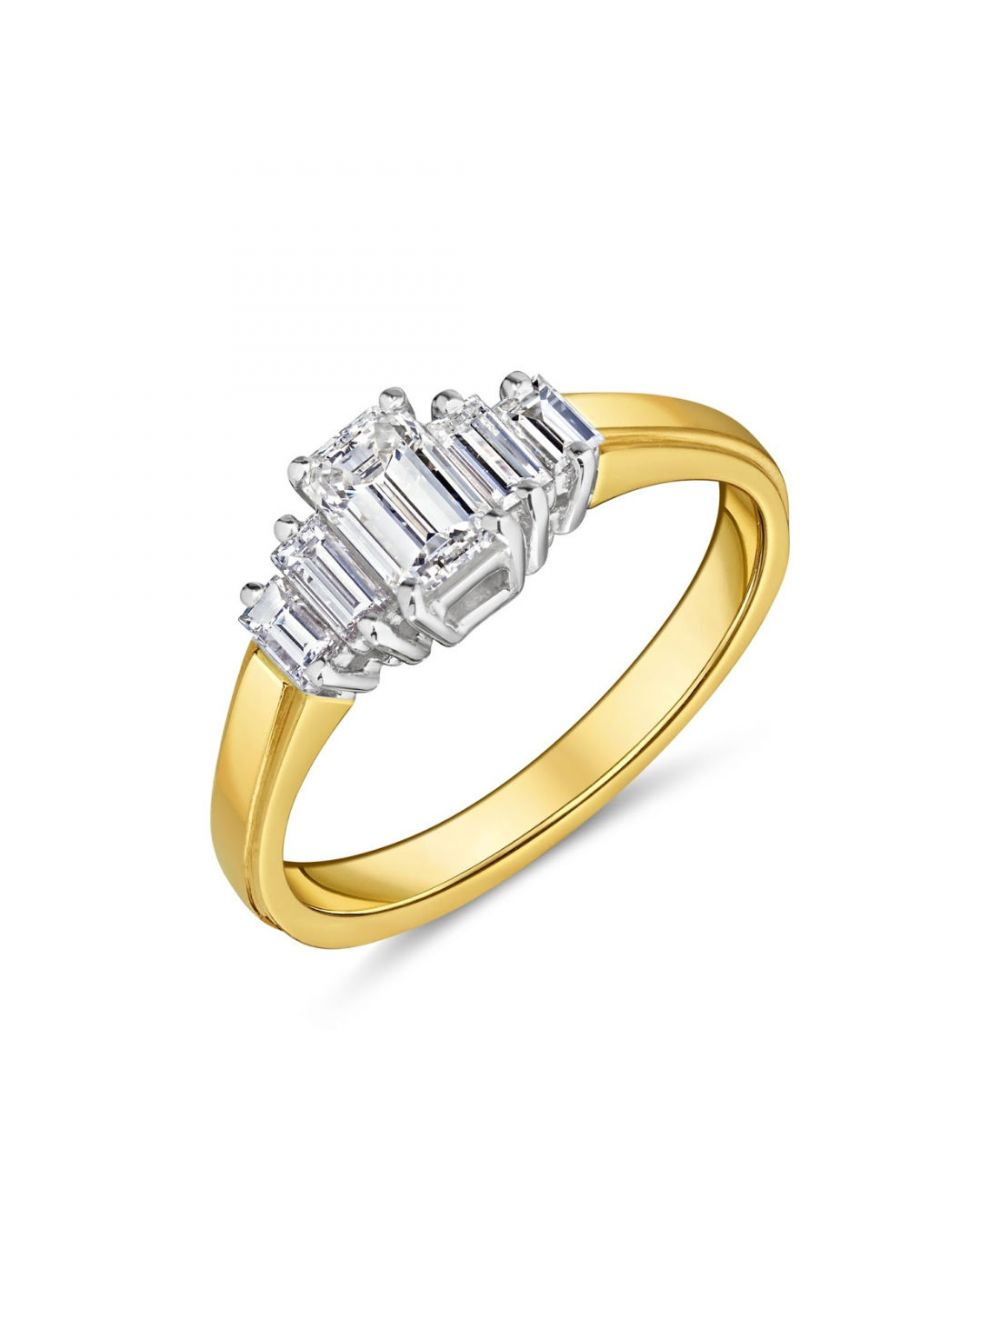 18ct Yellow Gold Emerald Cut Diamond Ring With Baguettes Each Side Ryan Thomas Jewellers